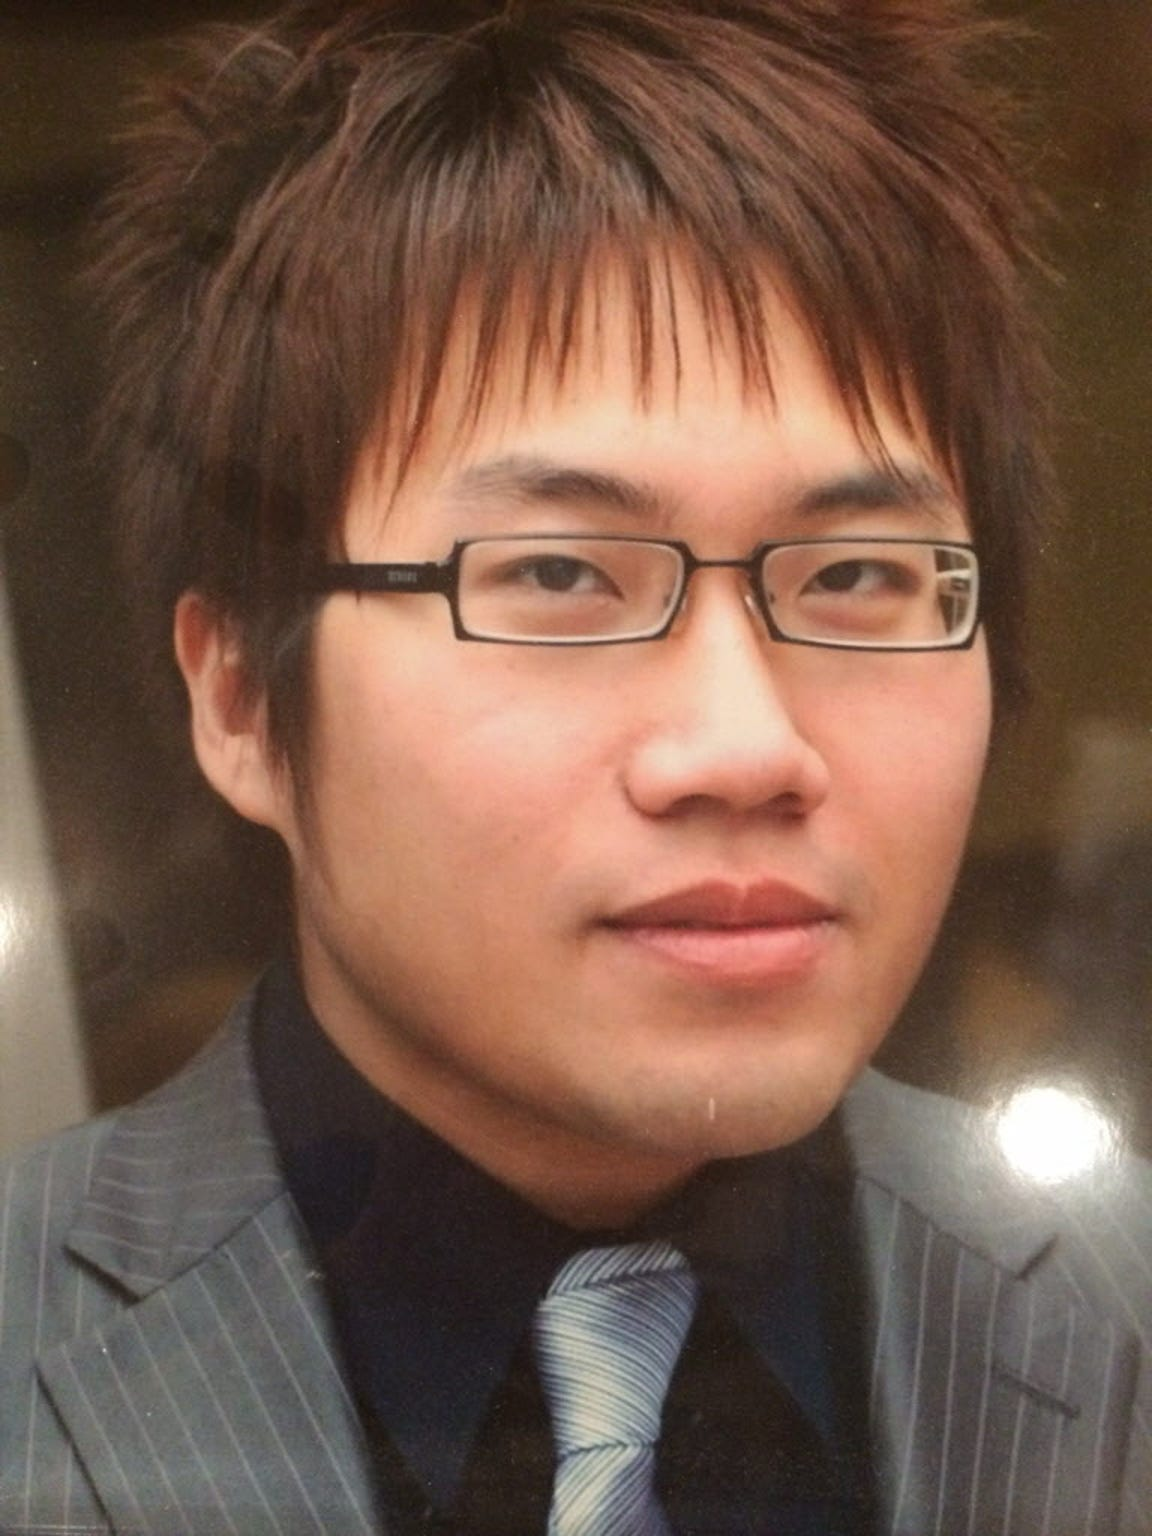 Richard Din, a 25-year-old researcher, died in 2012